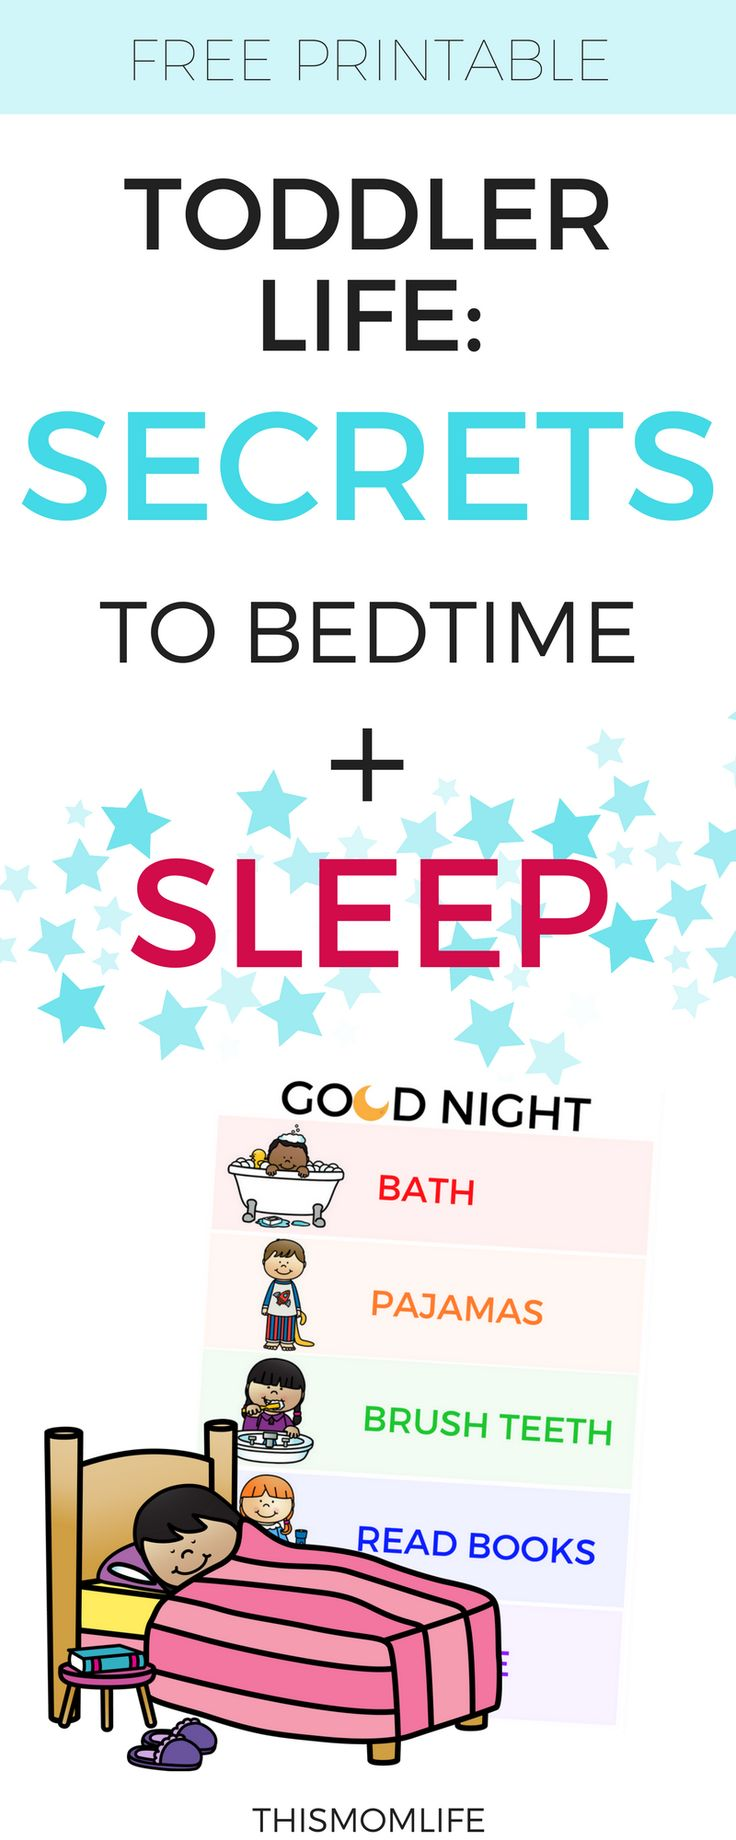 Training your toddler to sleep through the night in their own bed has its issues.  The solution is to use a free printable routine chart.  Kids, Night, Morning, Bedtime, Tips, Bedtime Routines.